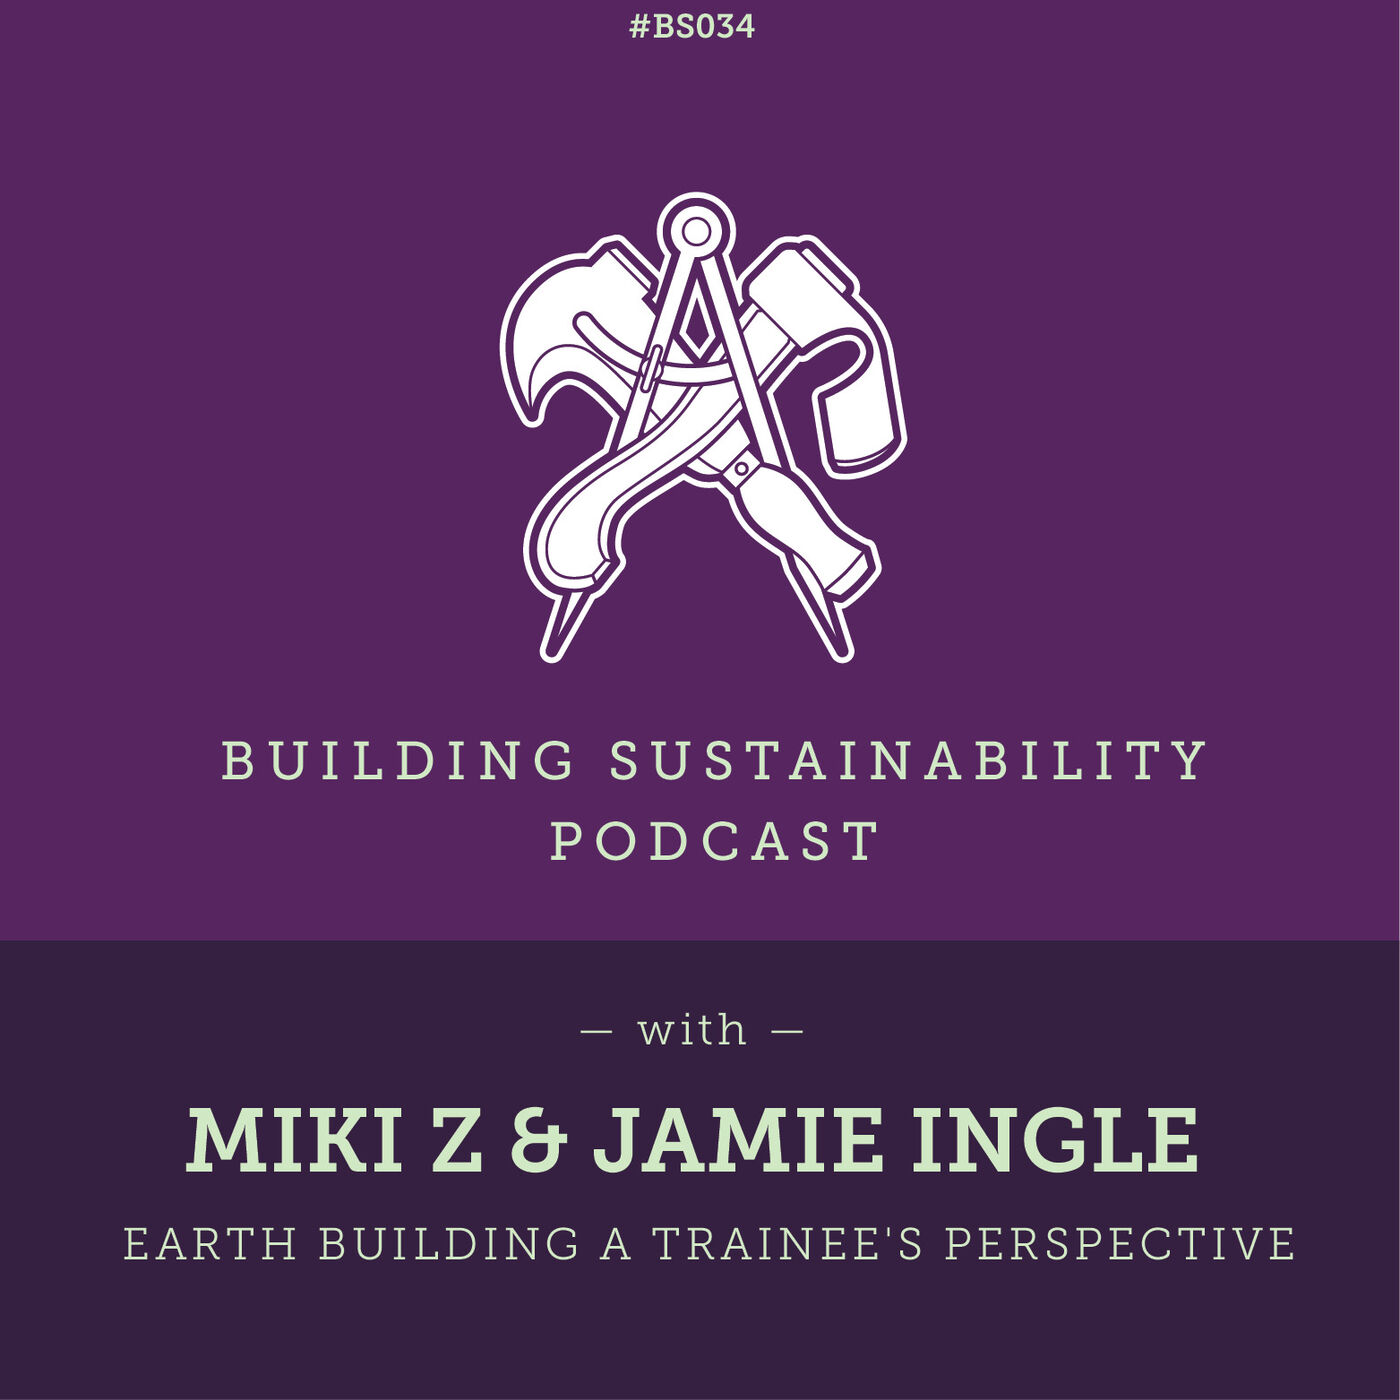 Earth Building a trainee's perspective - Miki Z & Jamie Ingle - Pt2 - BS034